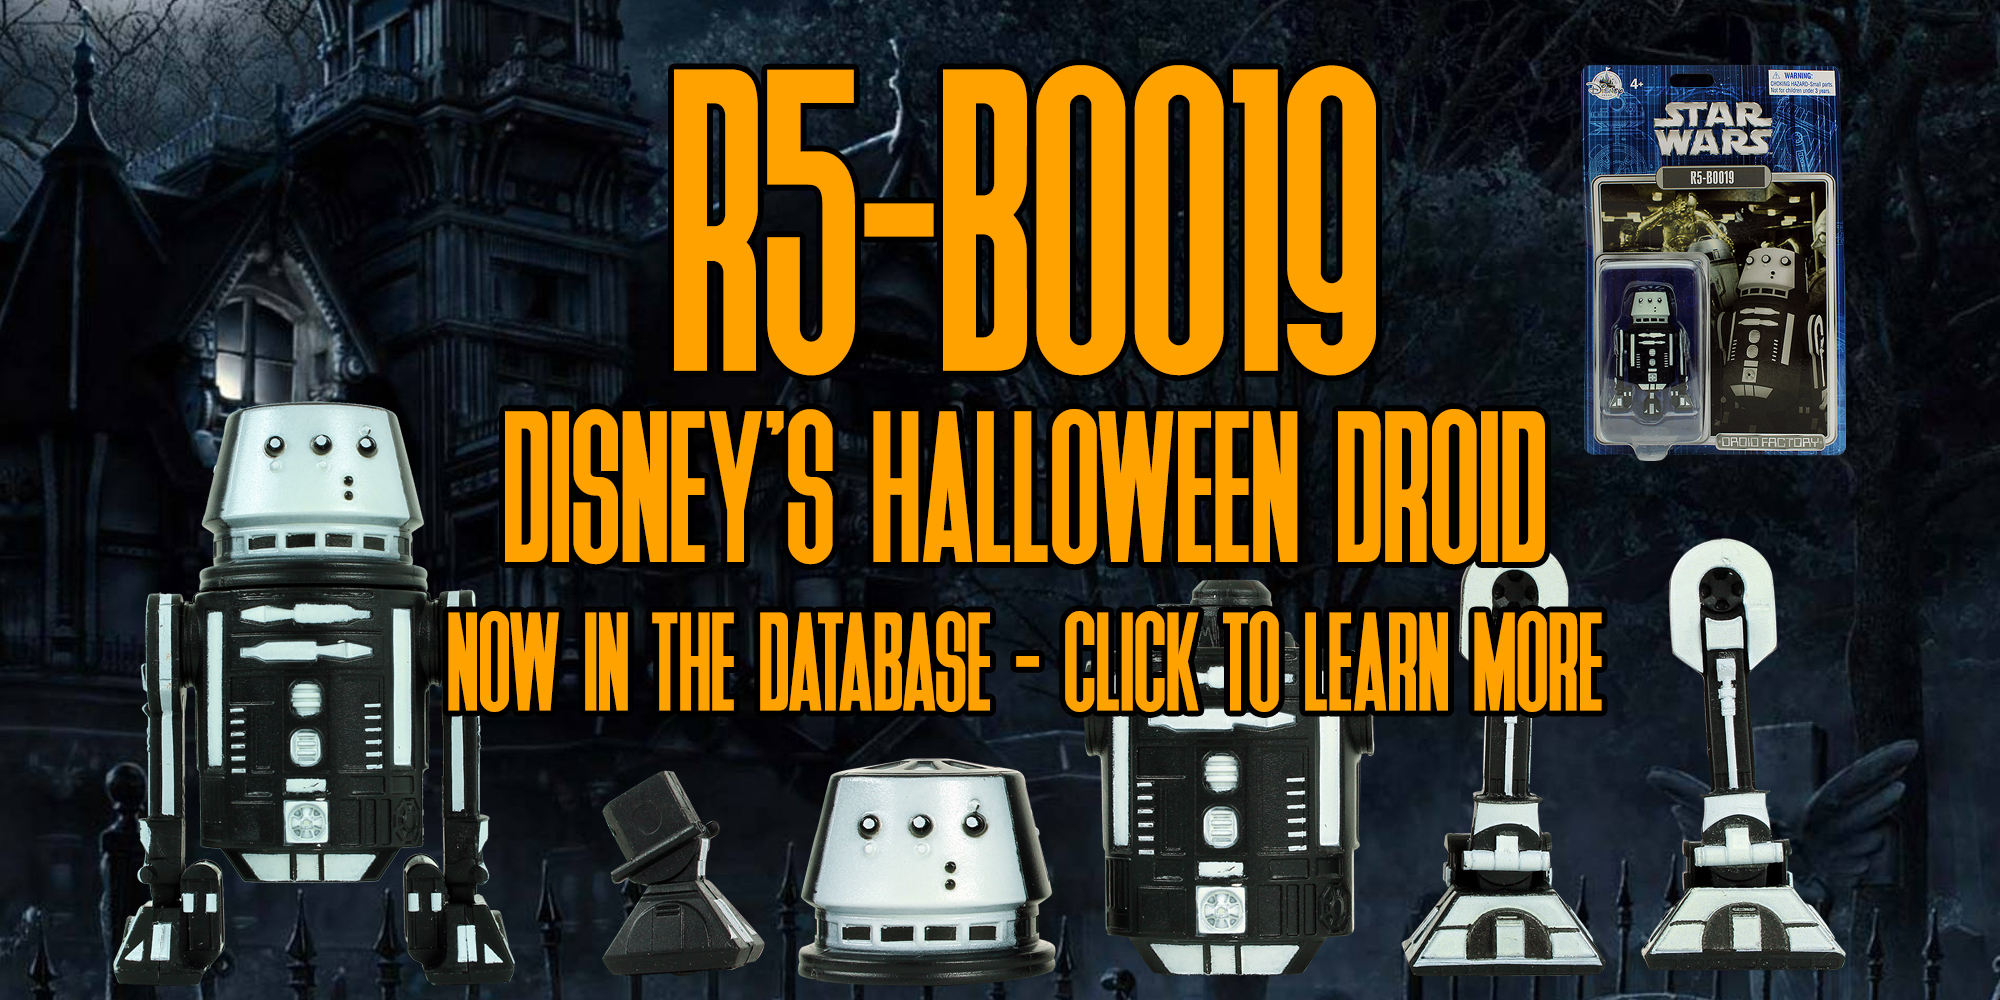 Star Wars R5-BOO19